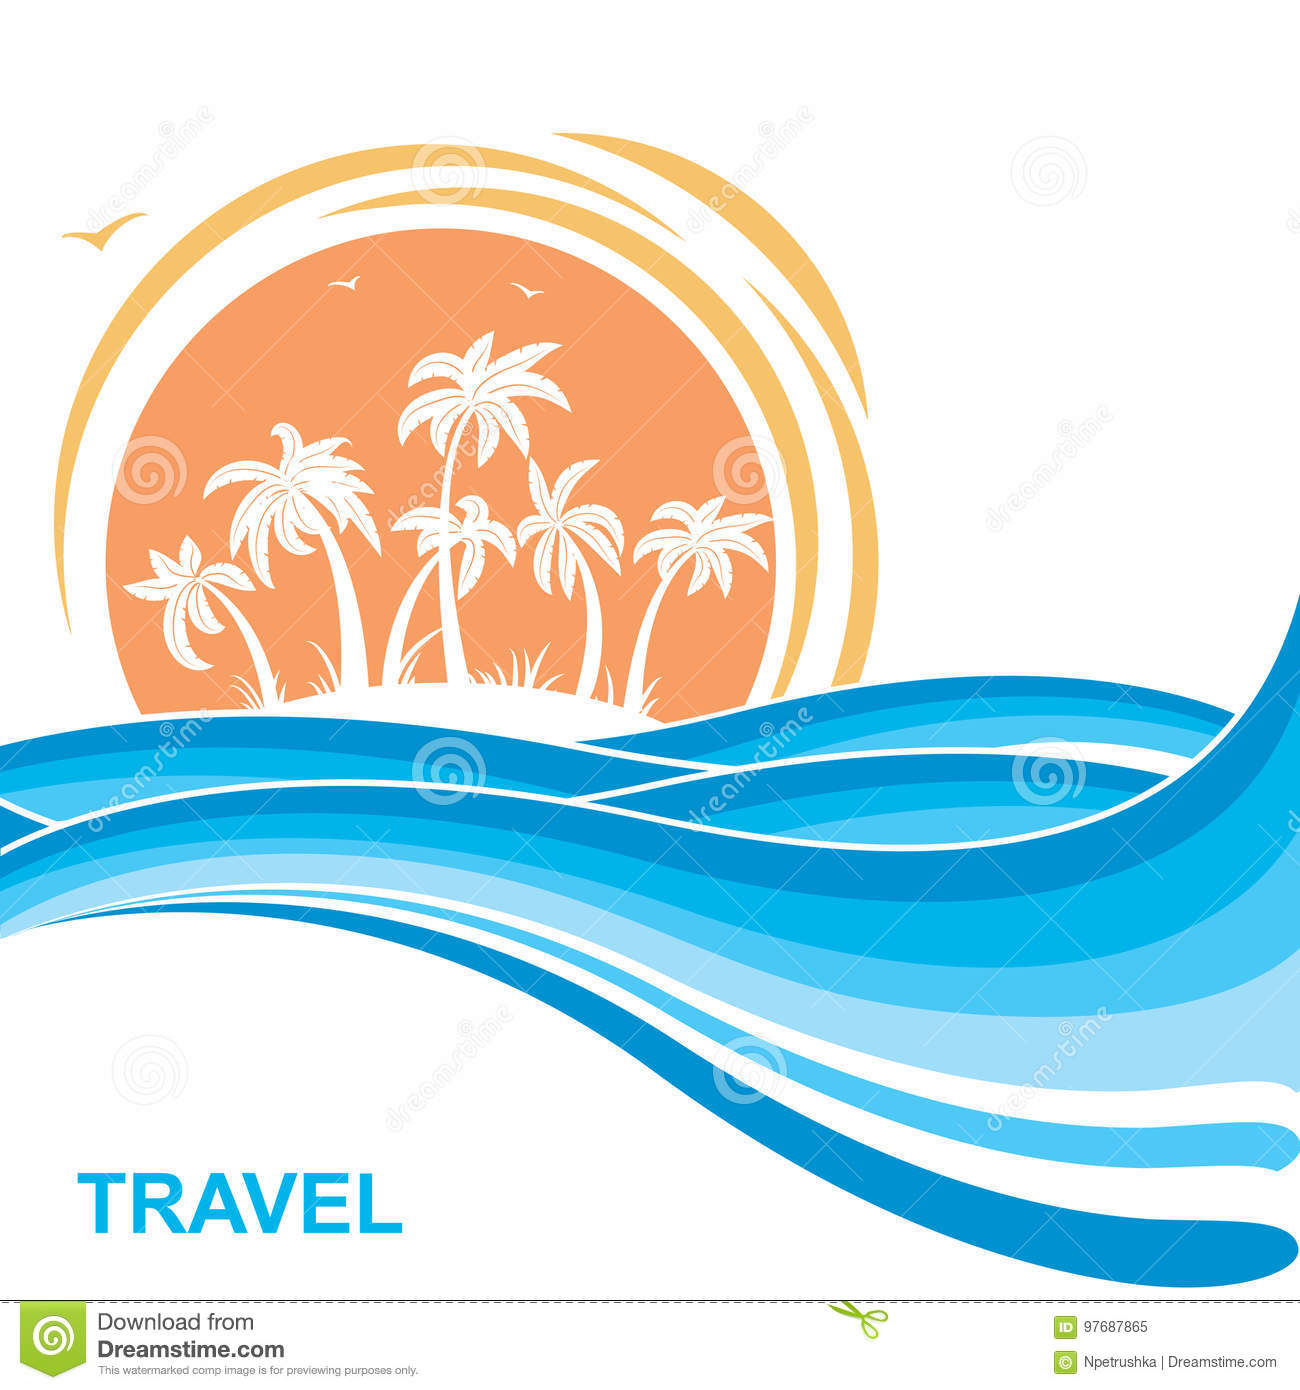 Tropical island and sun. Sea waves background illustration